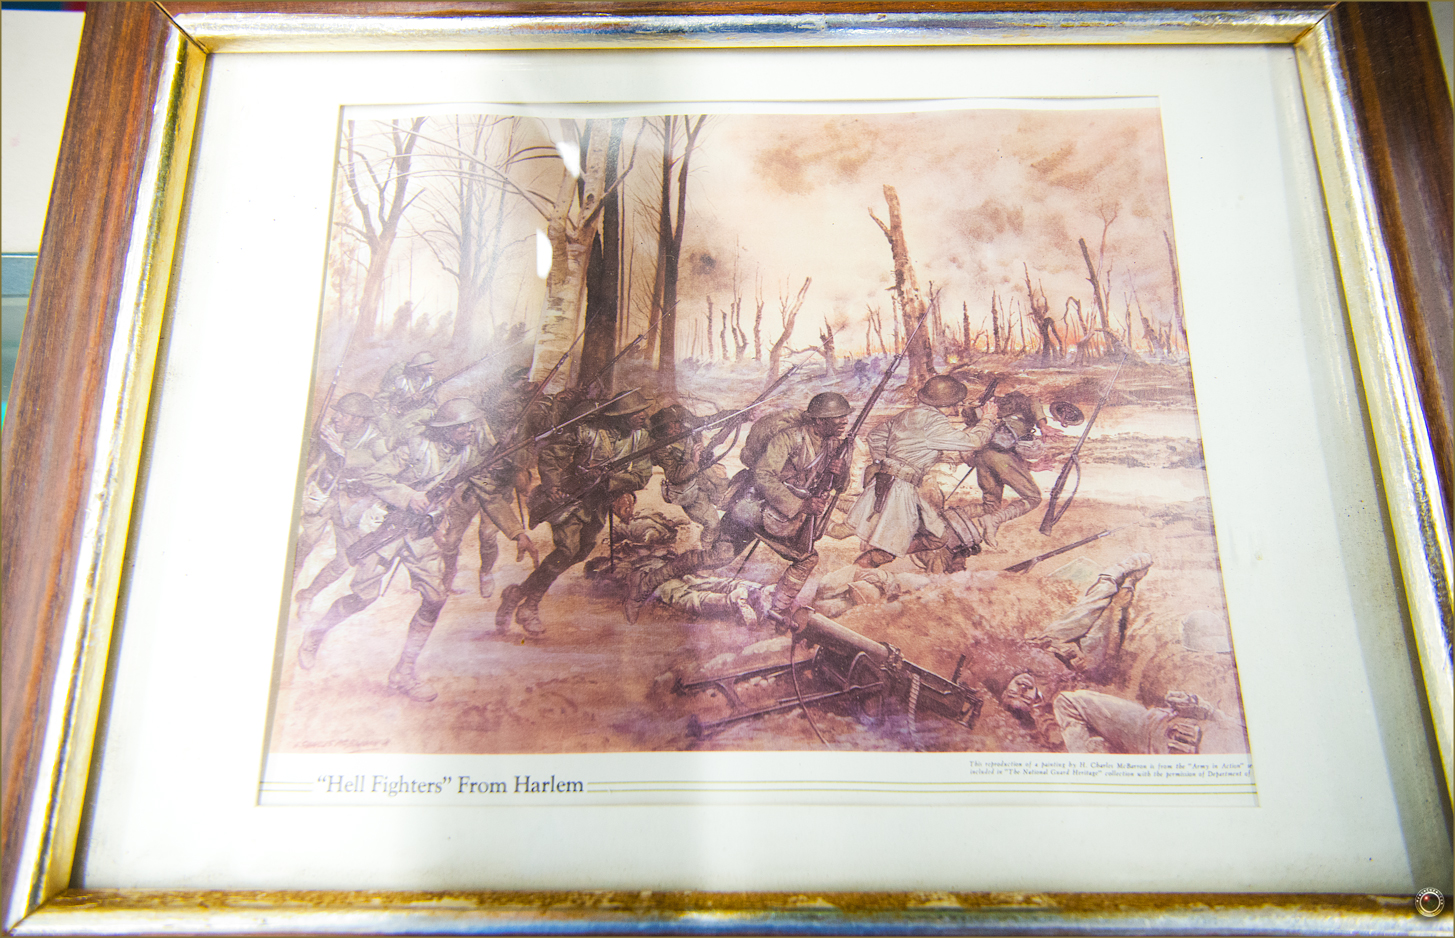 123 Russell Military Museum Buffalo Soldiers Army in Action H. Charles McBarron